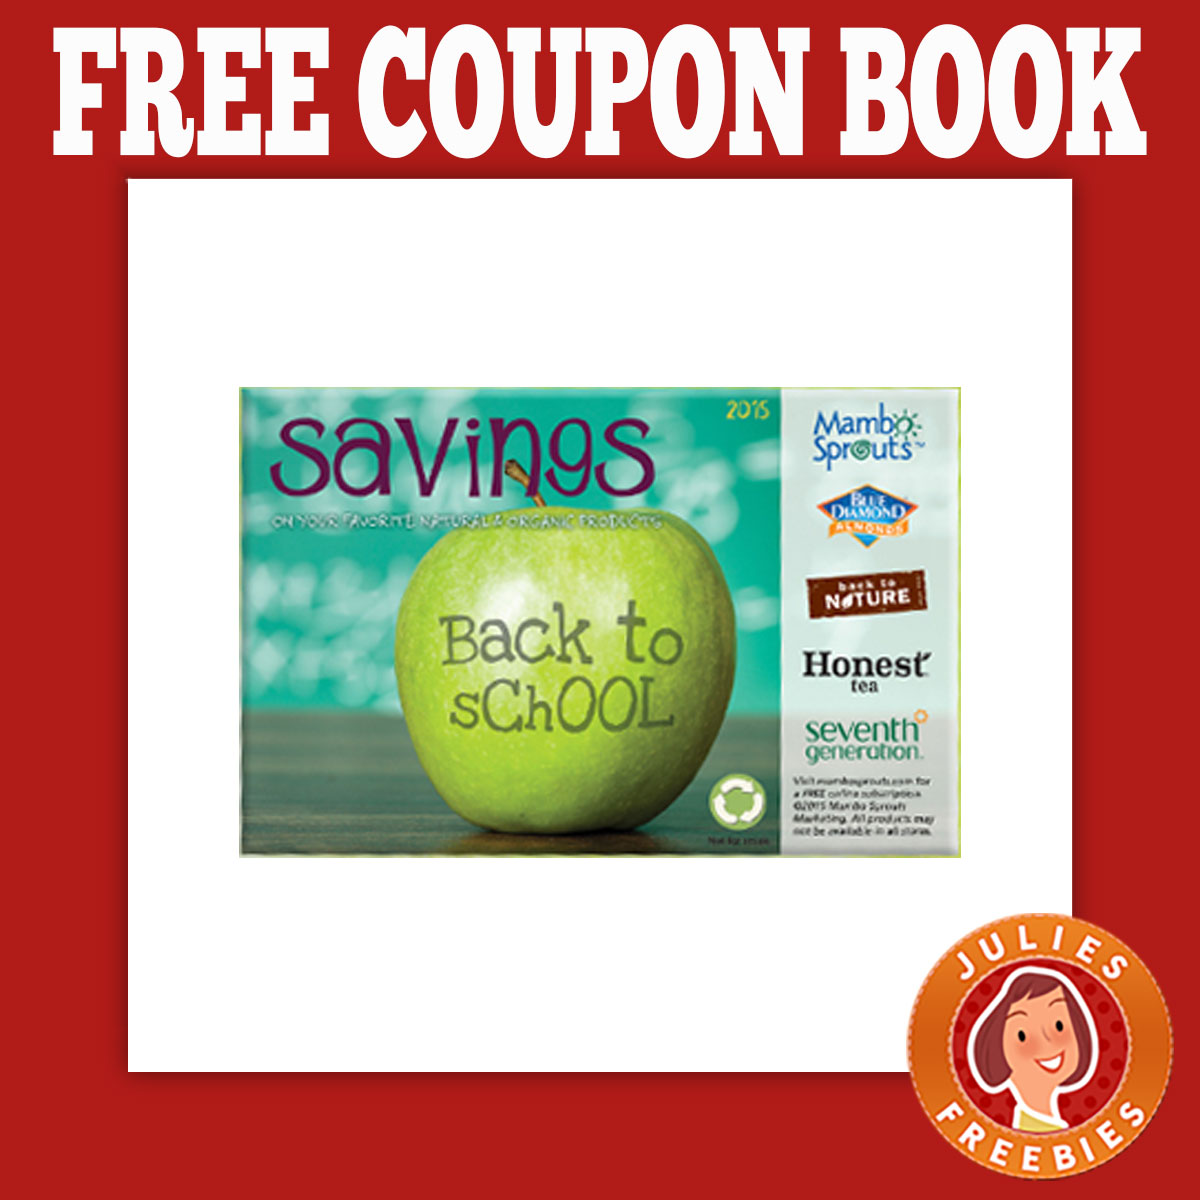 Free Grocery Coupon Books By Mail Picaboo Coupons Free Shipping